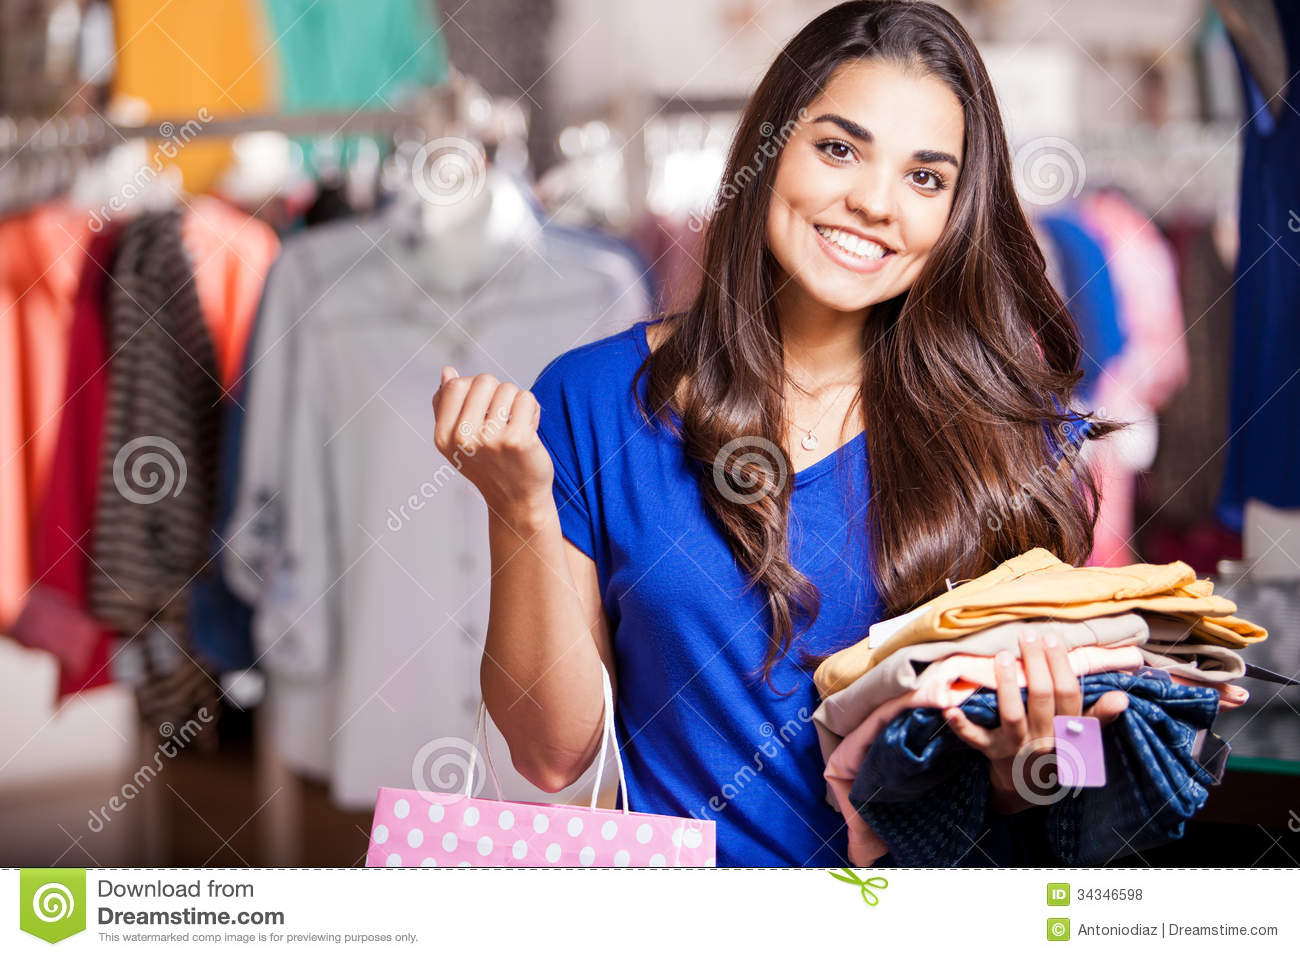 buying a new outfit for tonight stock photo  image of